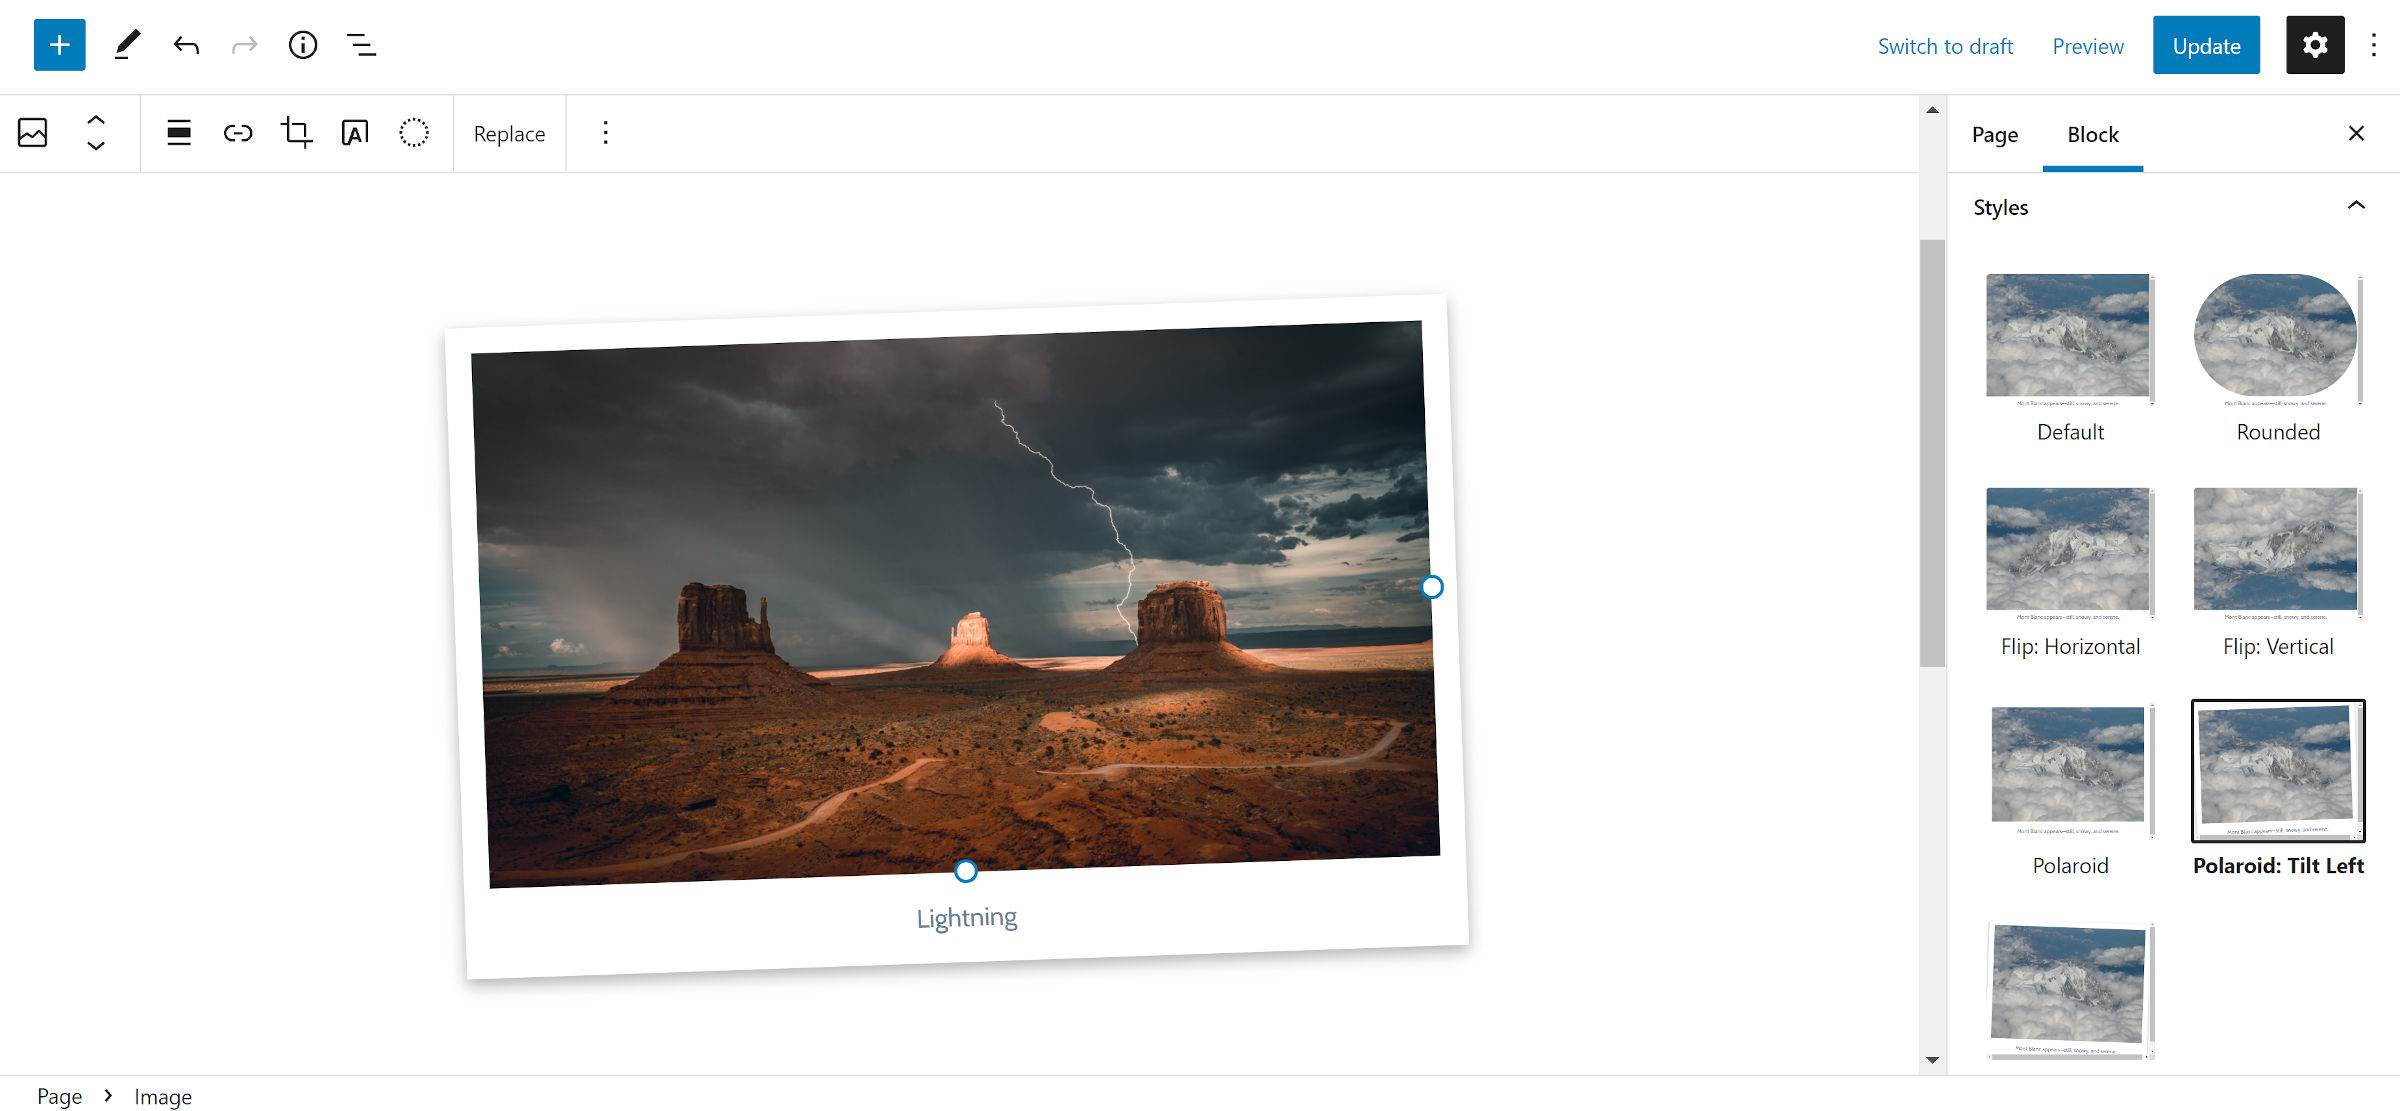 Block style for the WordPress Image block.  Selected is a Polaroid-style frame design that is tilted to the left.